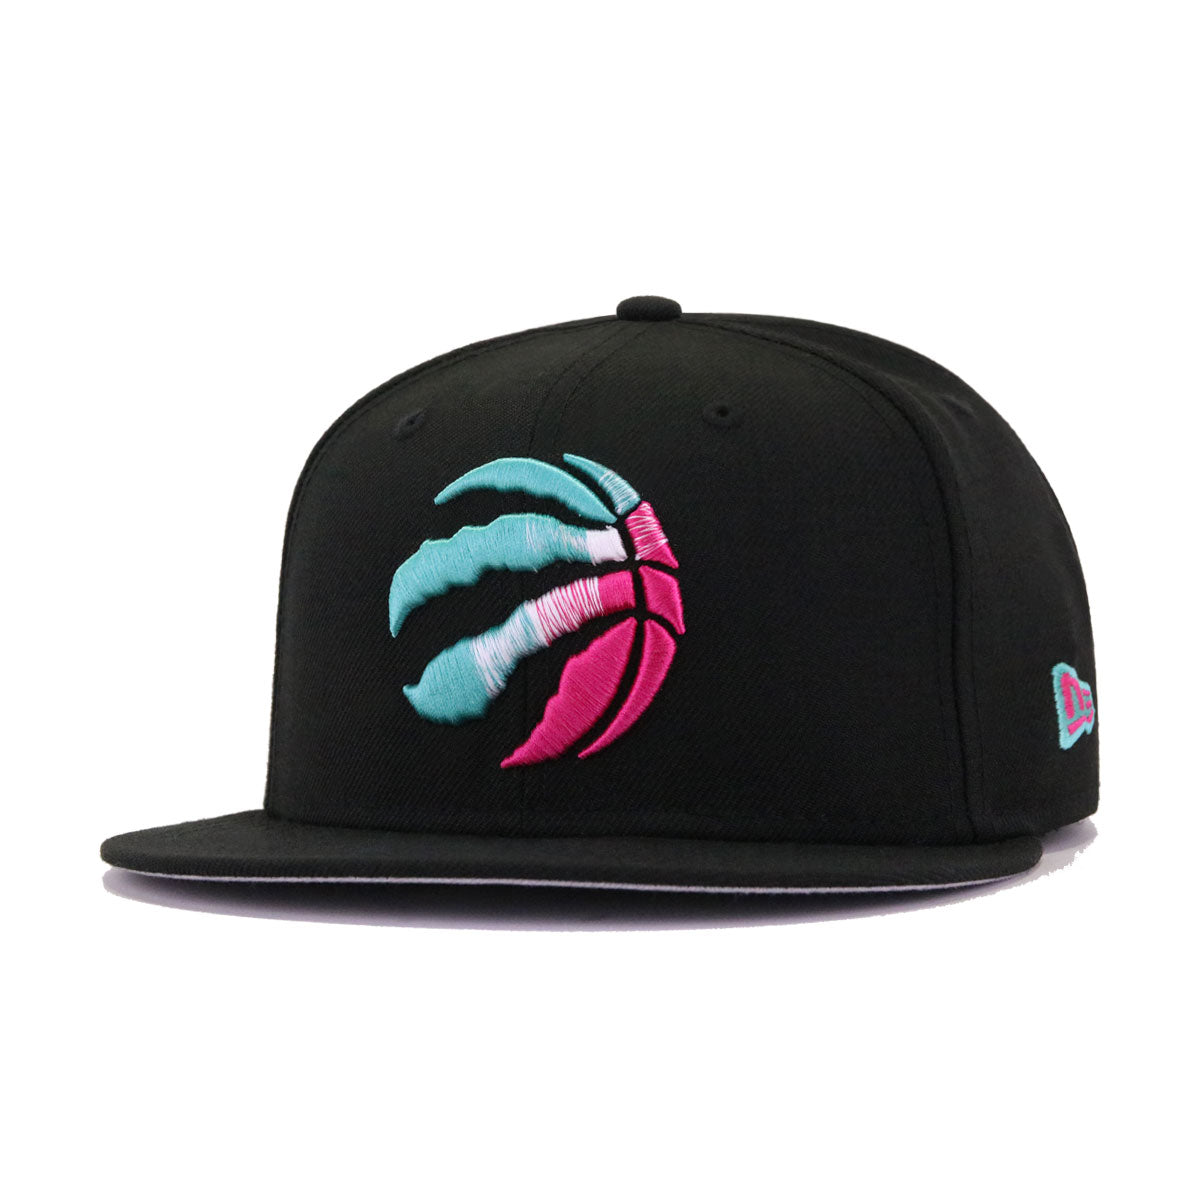 Toronto Raptors Black Aqua Beet Root Purple New Era 9Fifty Snapback